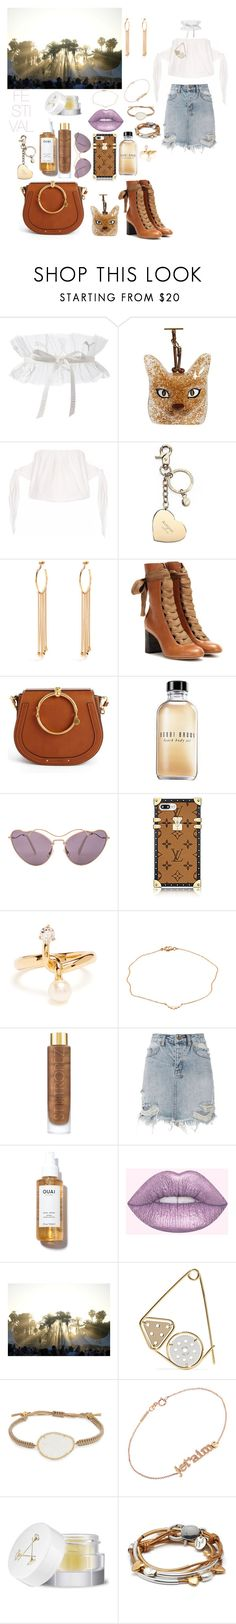 """Festival look"" by mylano ❤ liked on Polyvore featuring Puma, Loewe, Aspinal of London, Chloé, Bobbi Brown Cosmetics, Miu Miu, Mimata, St. Tropez, Ksubi and Lime Crime"